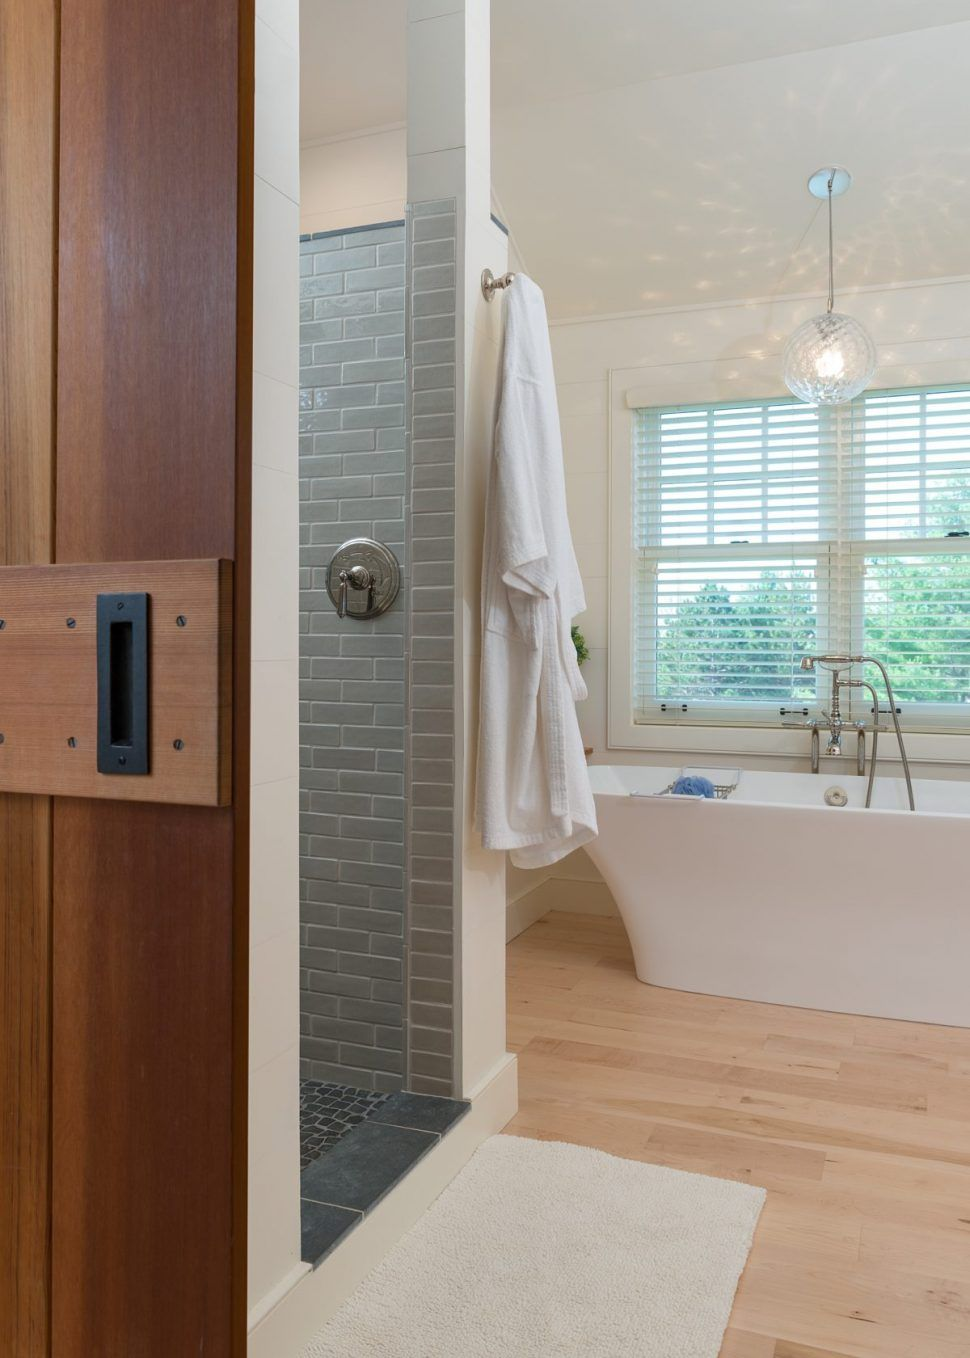 With a wide range of designs as well as surfaces the bathroom cabinet variety gives a substantial choice of standard and modern looks bathroomcabinet